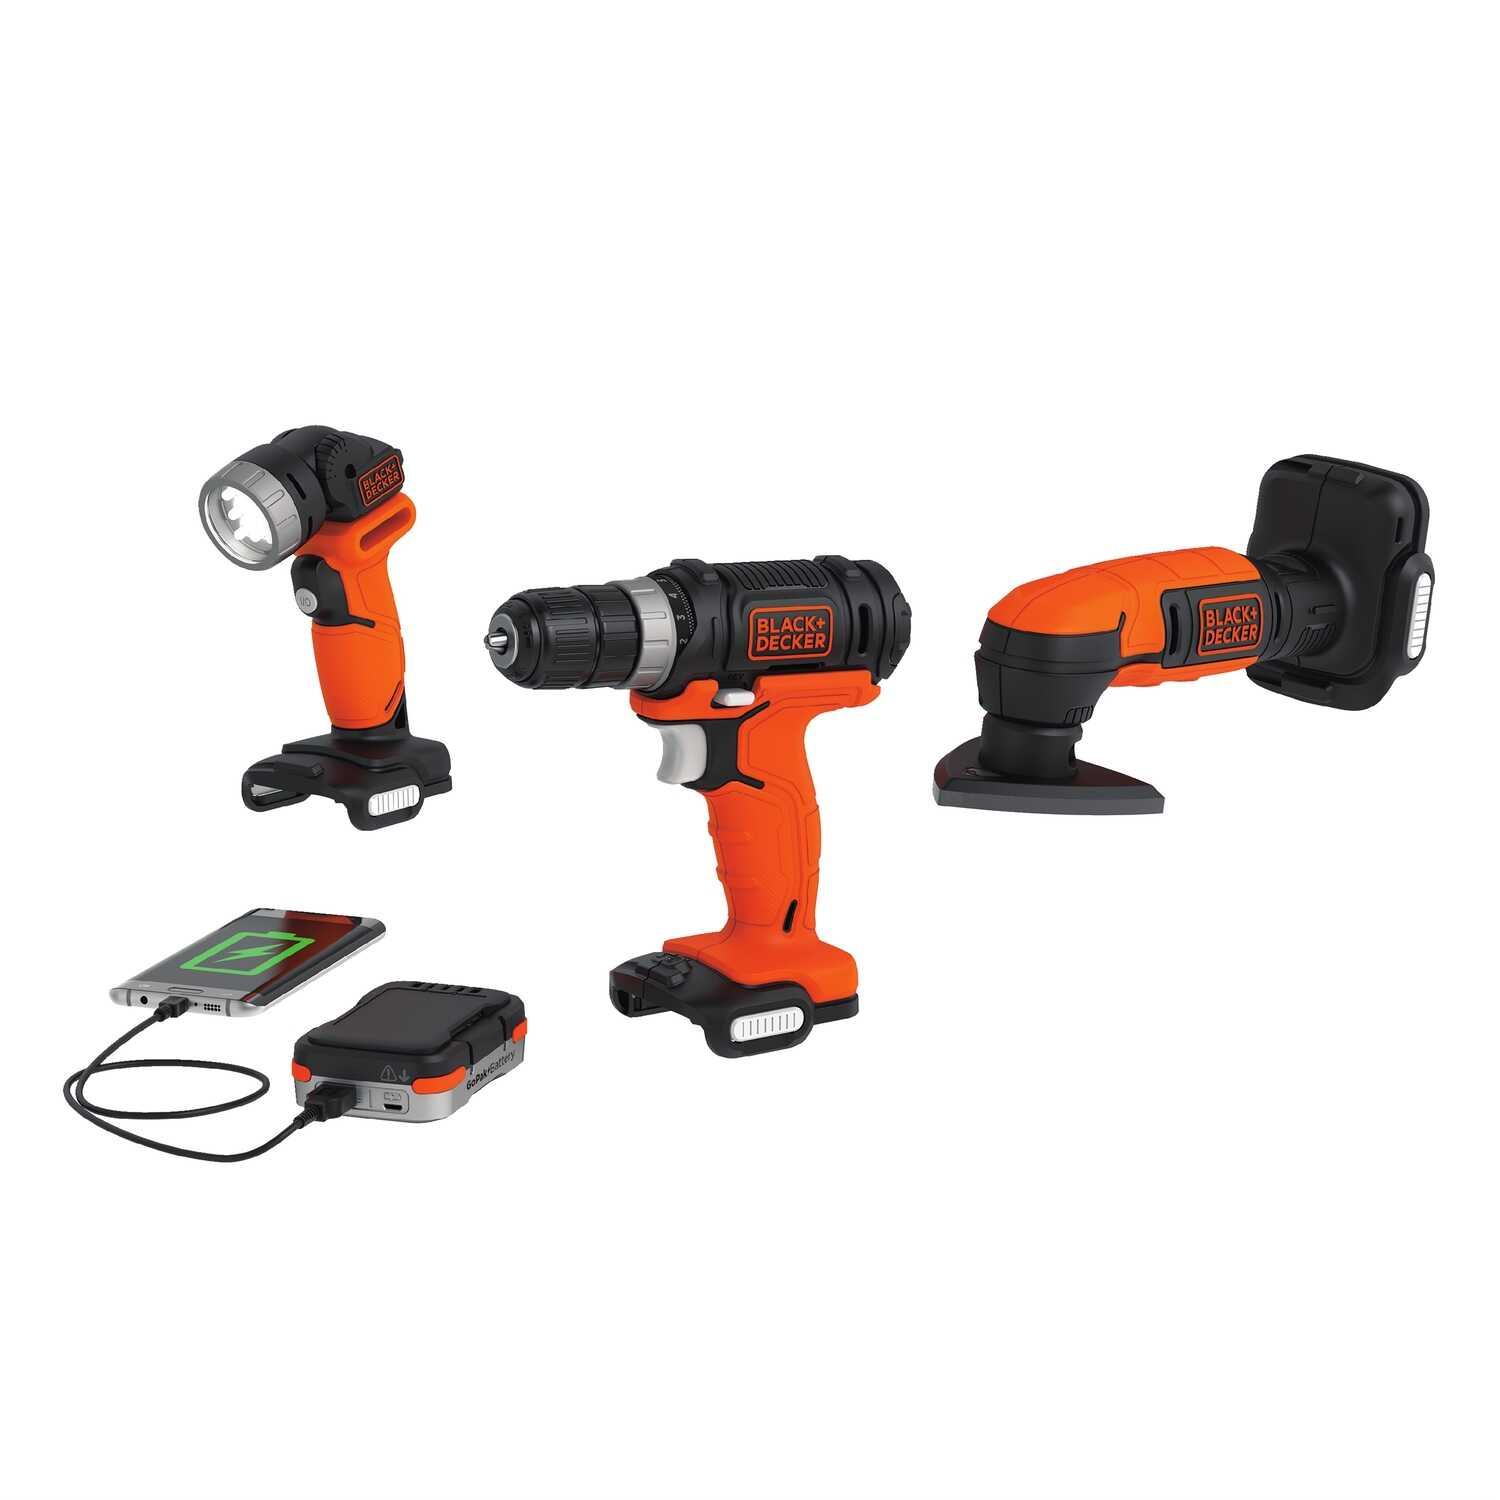 Black and Decker  GoPak  Cordless  3 tool Drill, LED Light and Sander Kit  12 volt